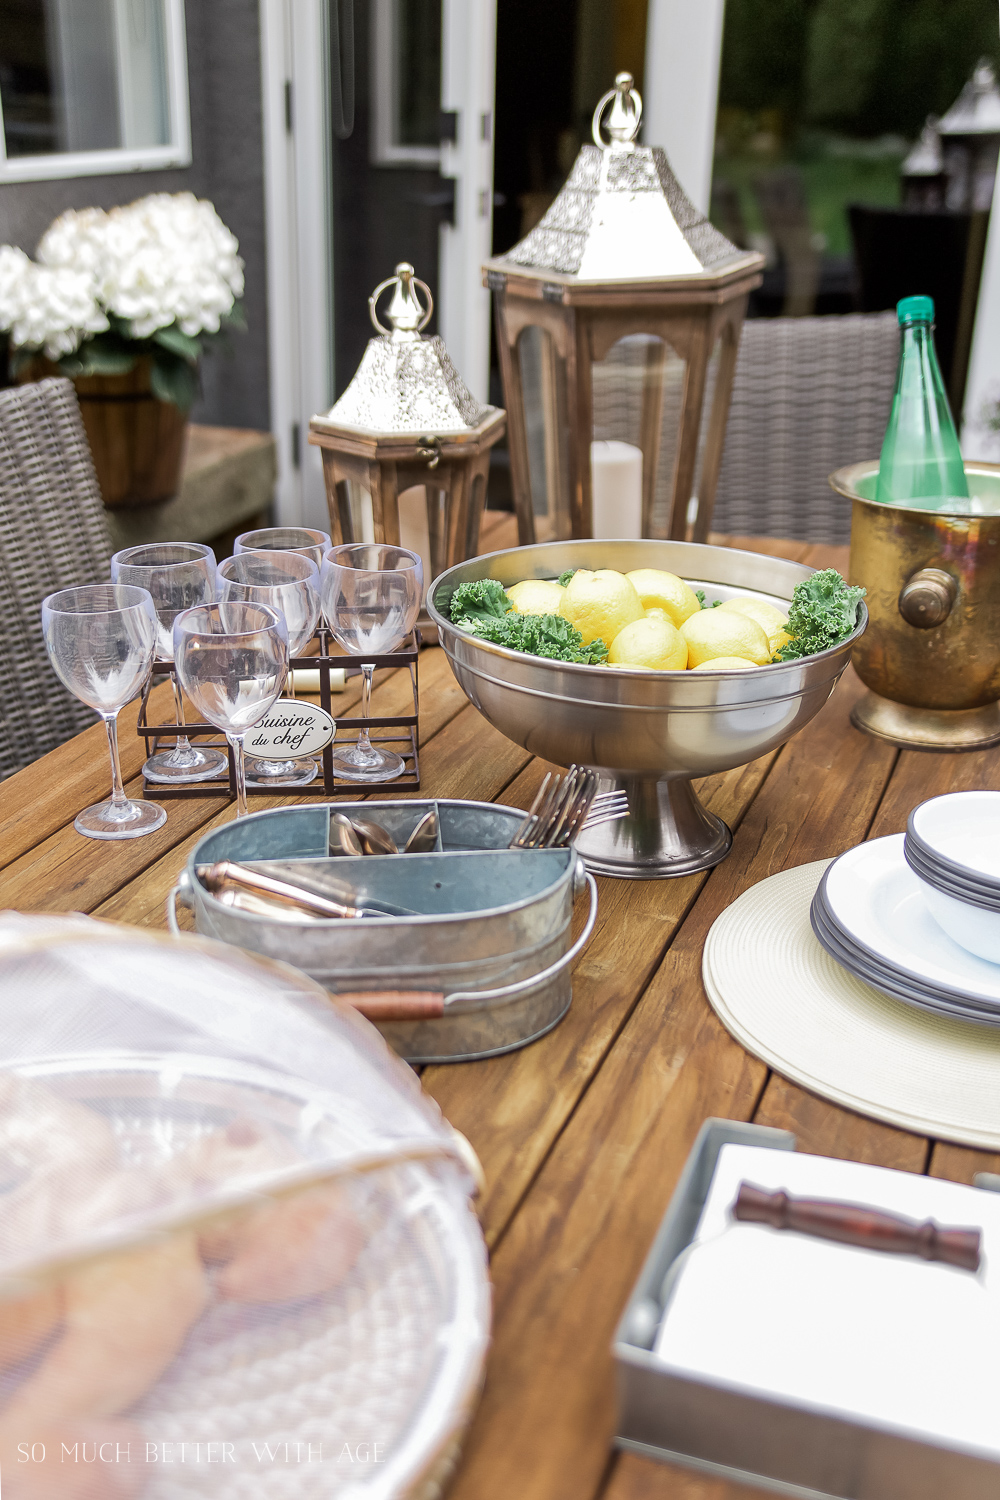 So Much Better With Age - How to Set a Casual Outdoor Table, French Vintage Style